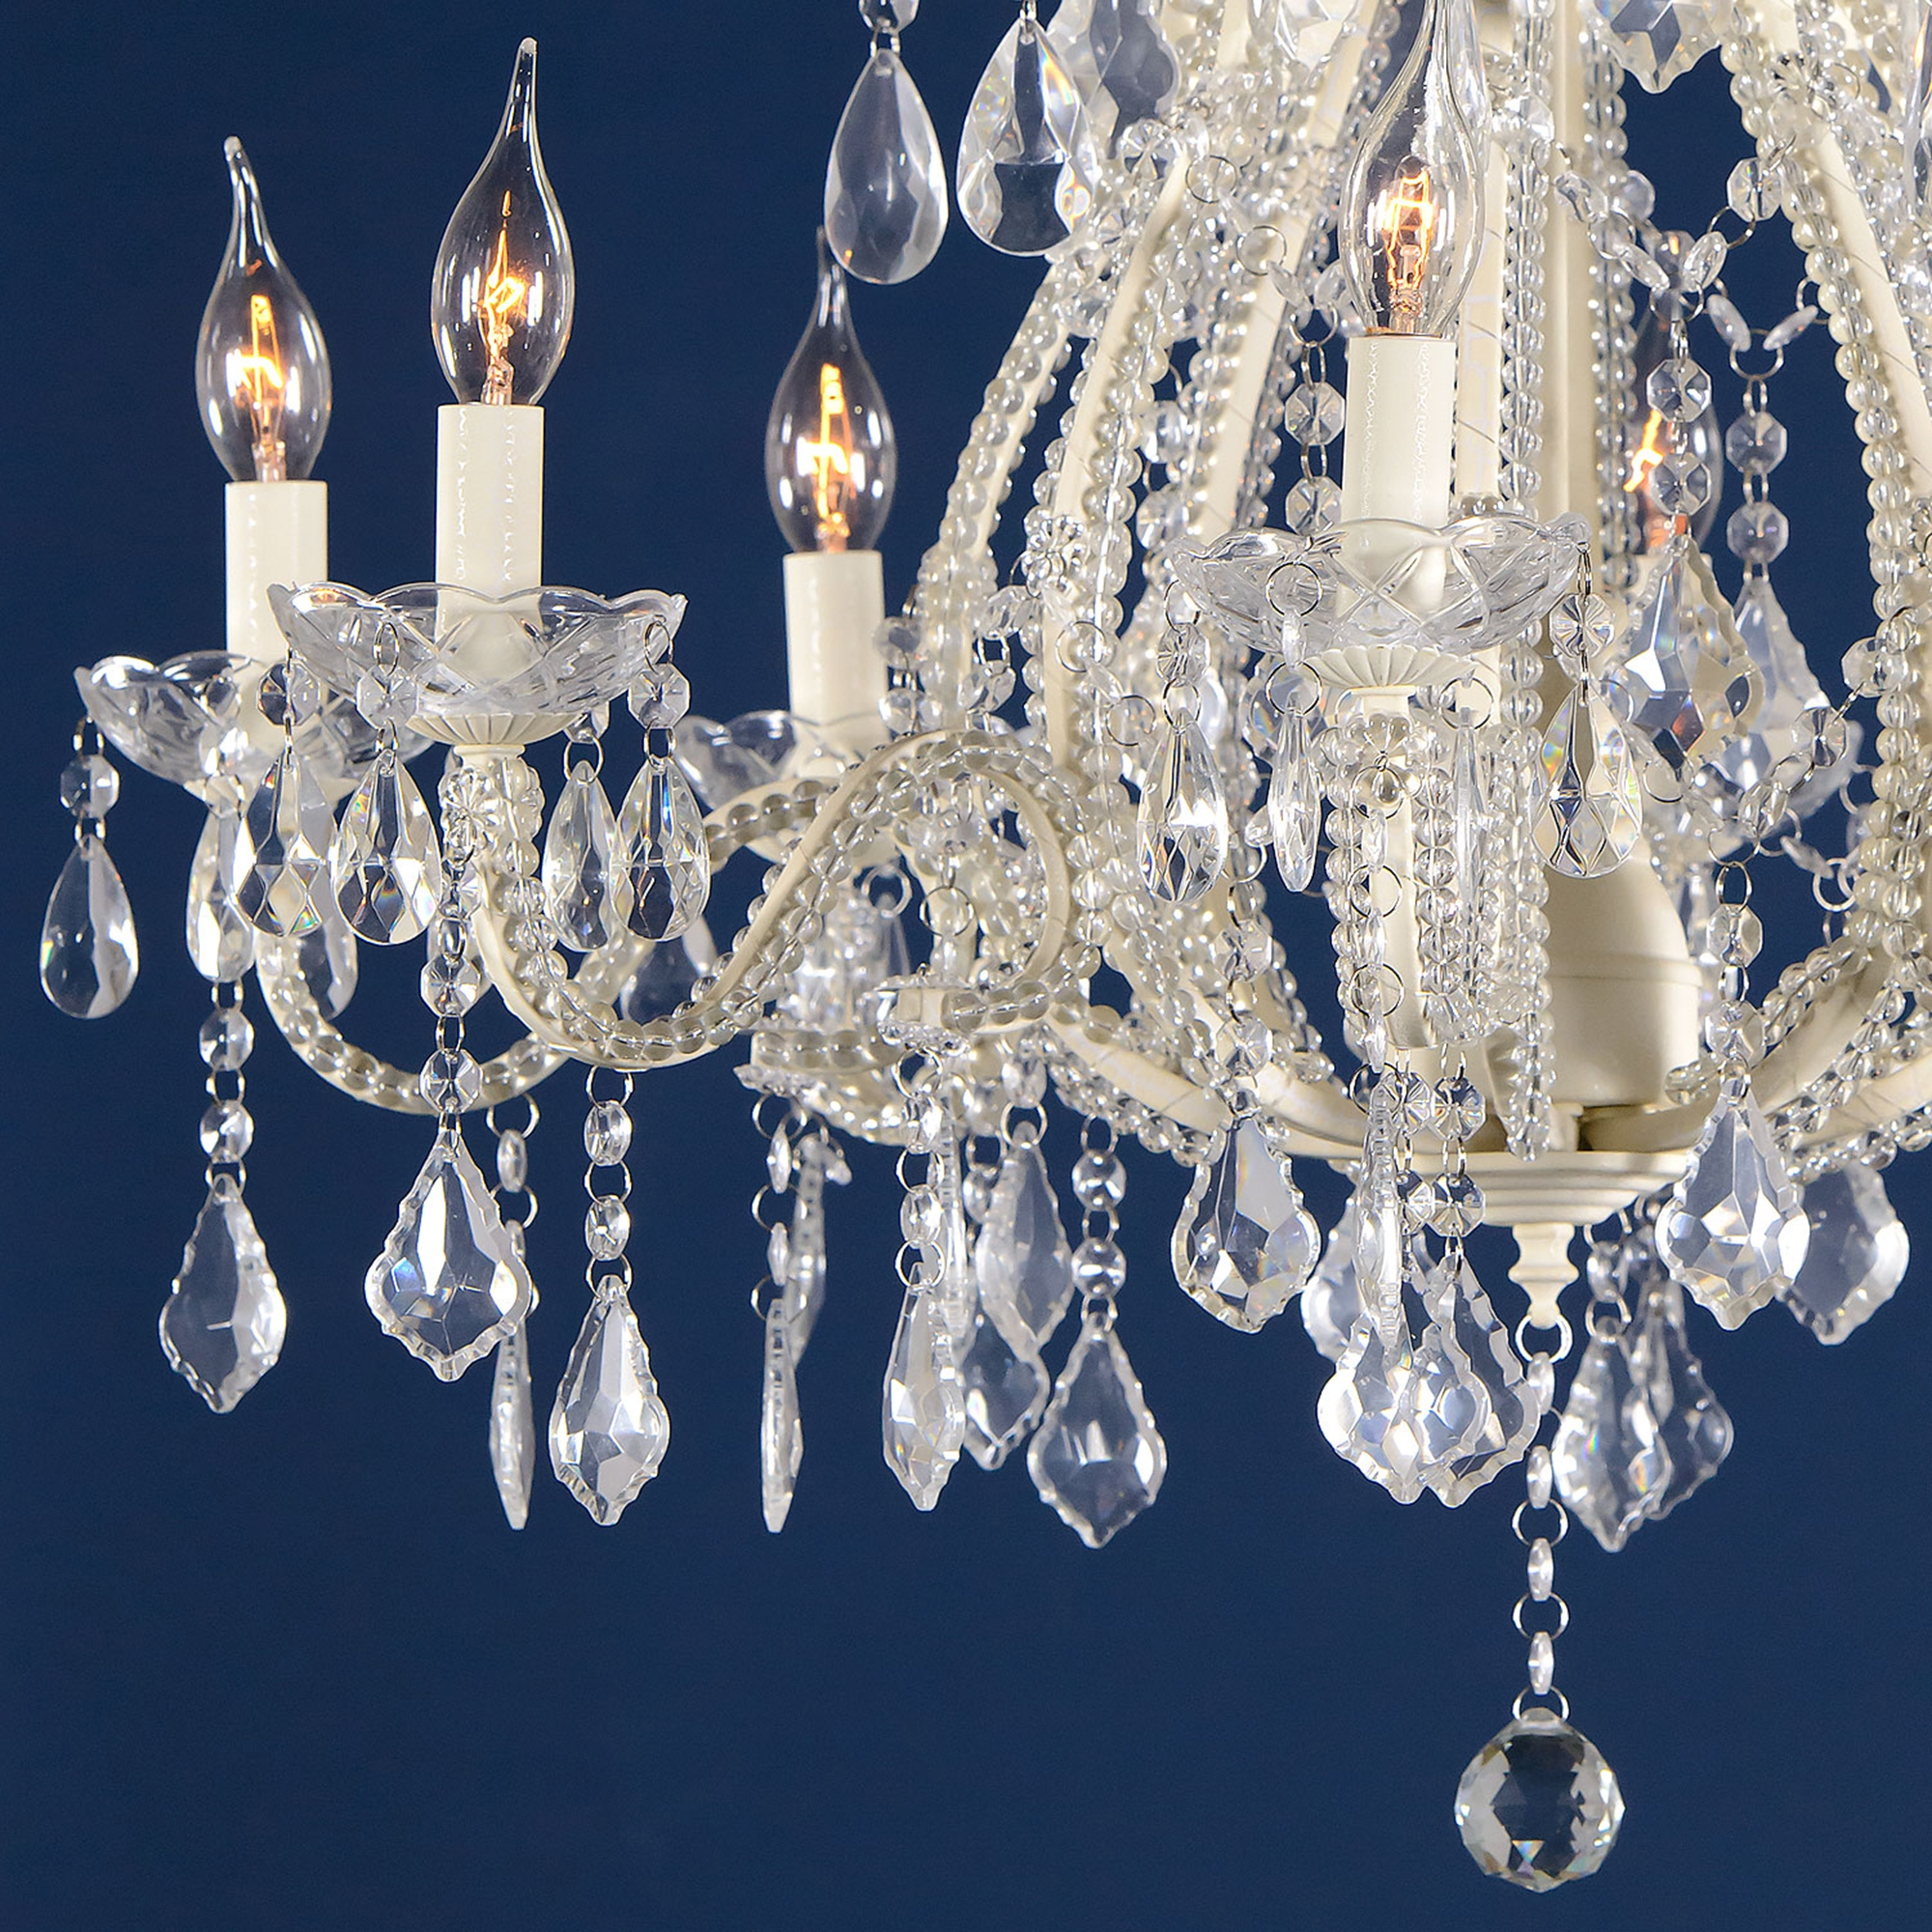 Marie Therese 8 Light Chandelier - Cream